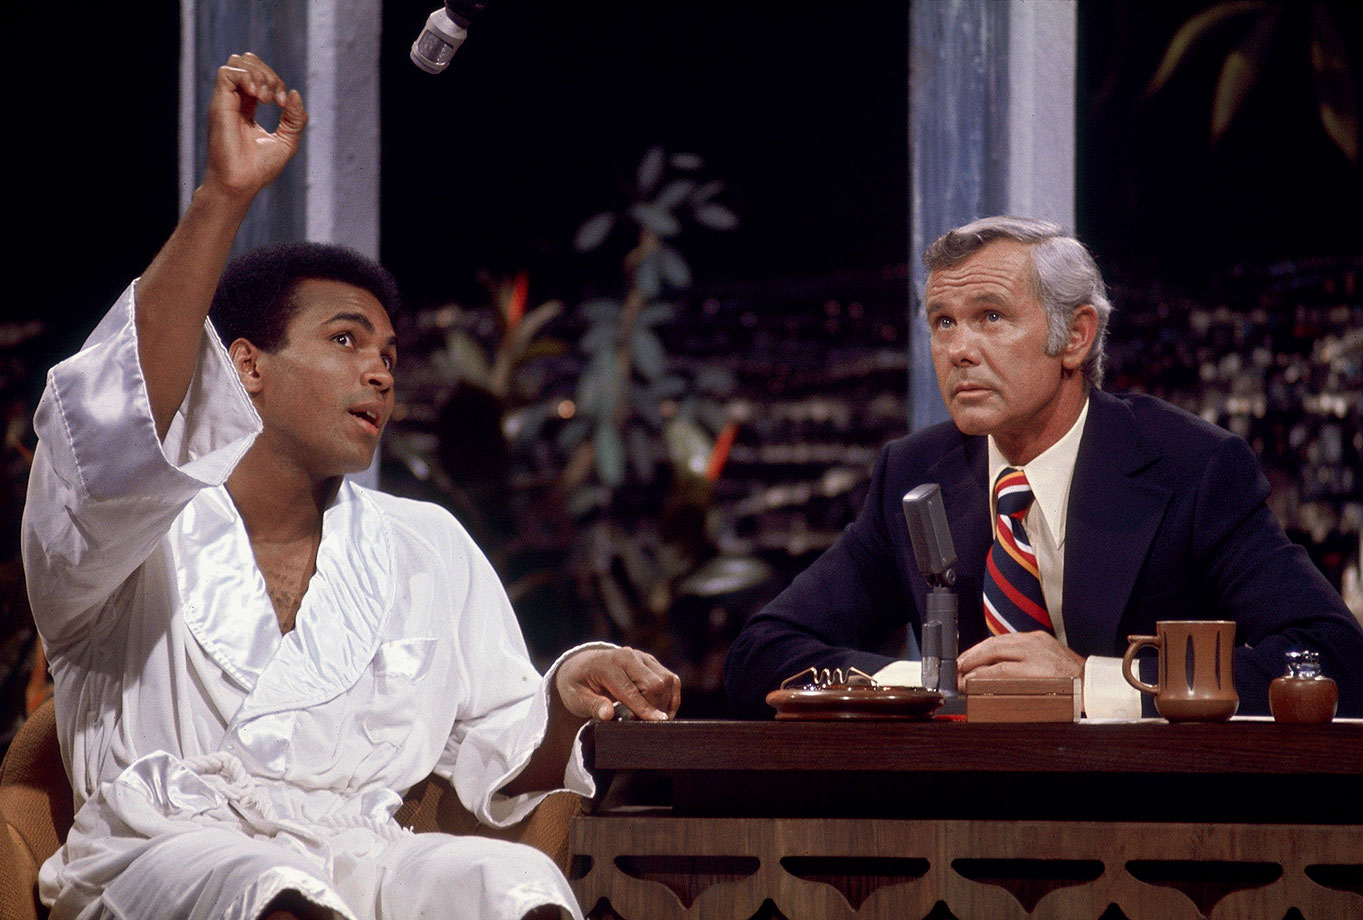 Johnny Carson listens to Ali on the Tonight Show three days before his rematch with Norton. Ali would avenge his earlier loss to Norton, winning a narrow split decision.